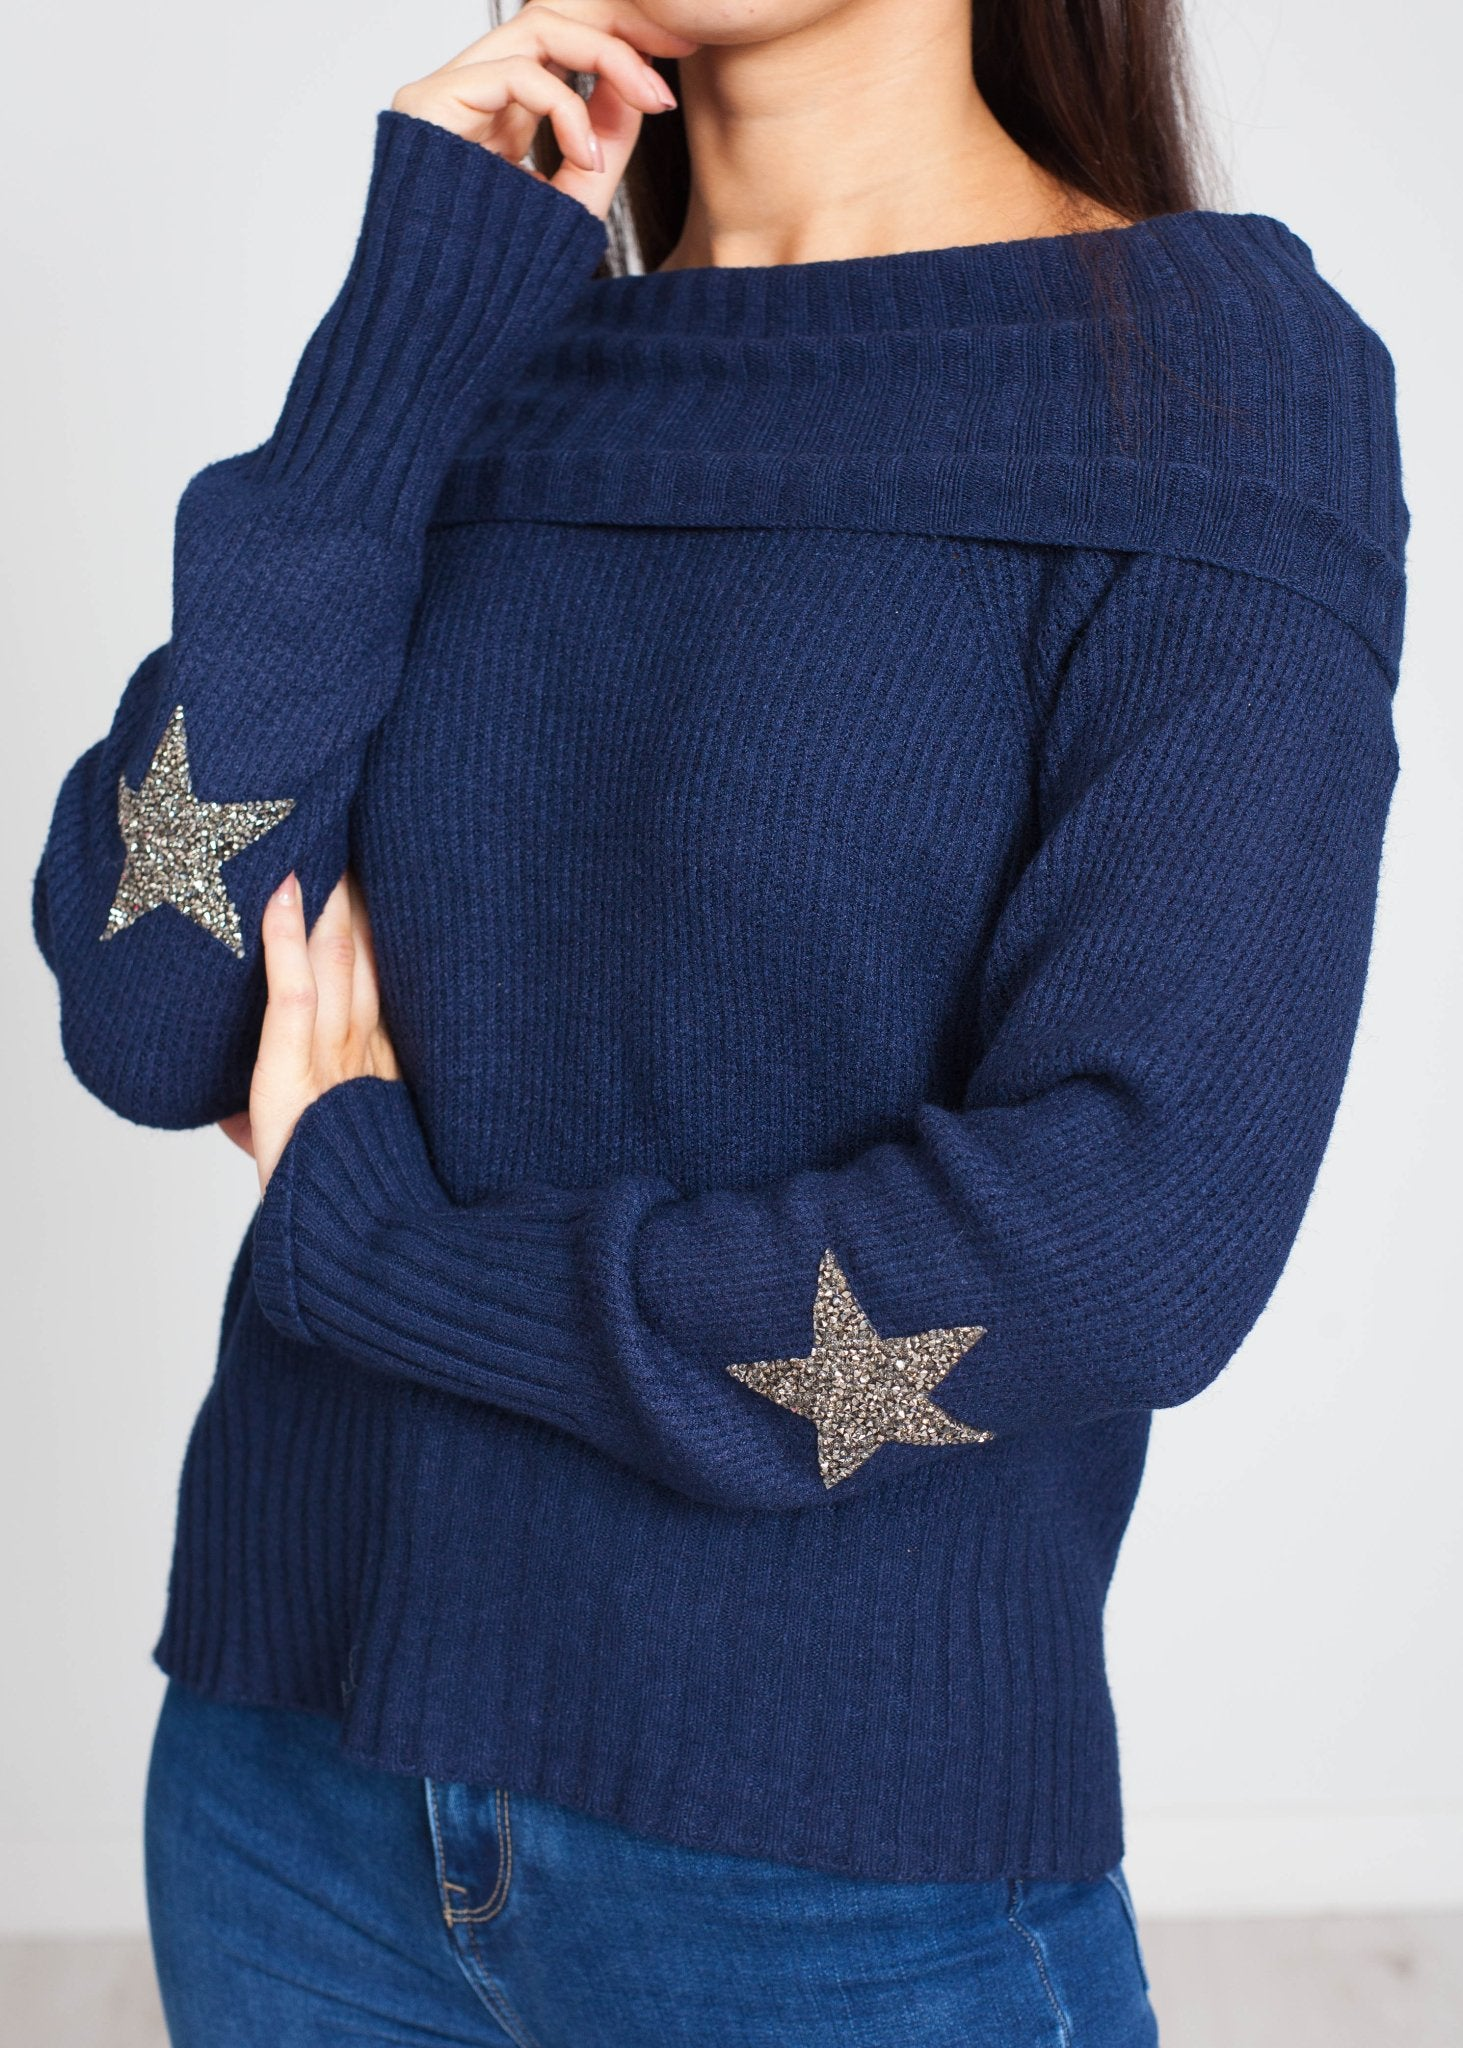 Priya Embellished Sleeve Polo In Navy - The Walk in Wardrobe